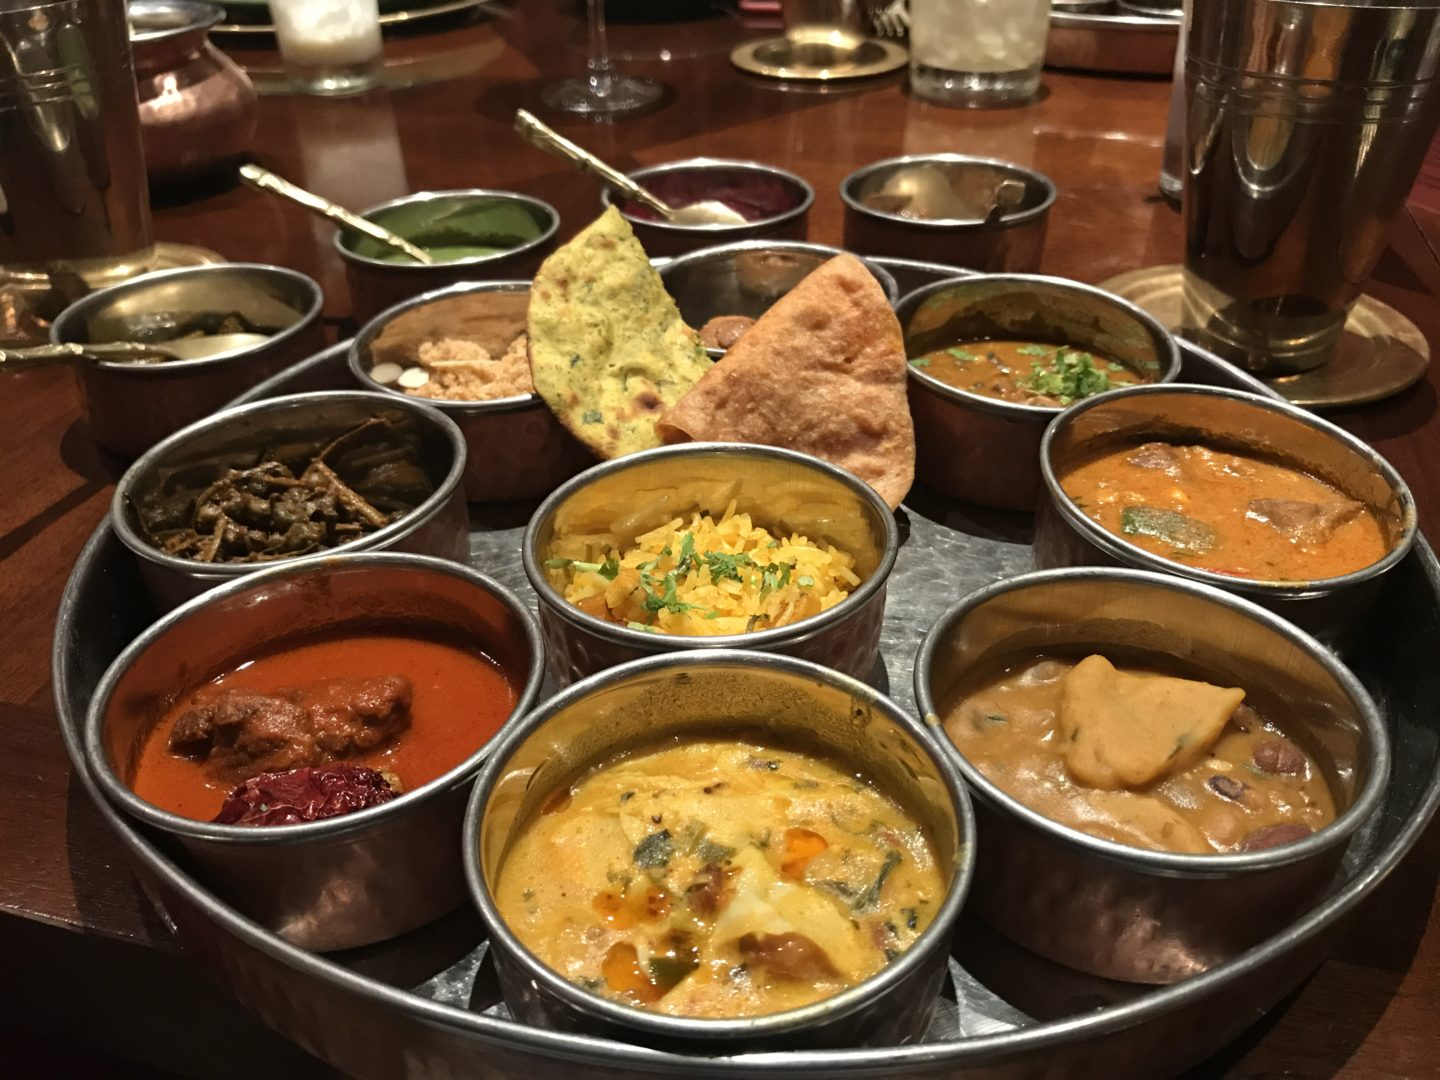 Rajasthani Food Festival at Grand Hyatt, Goa